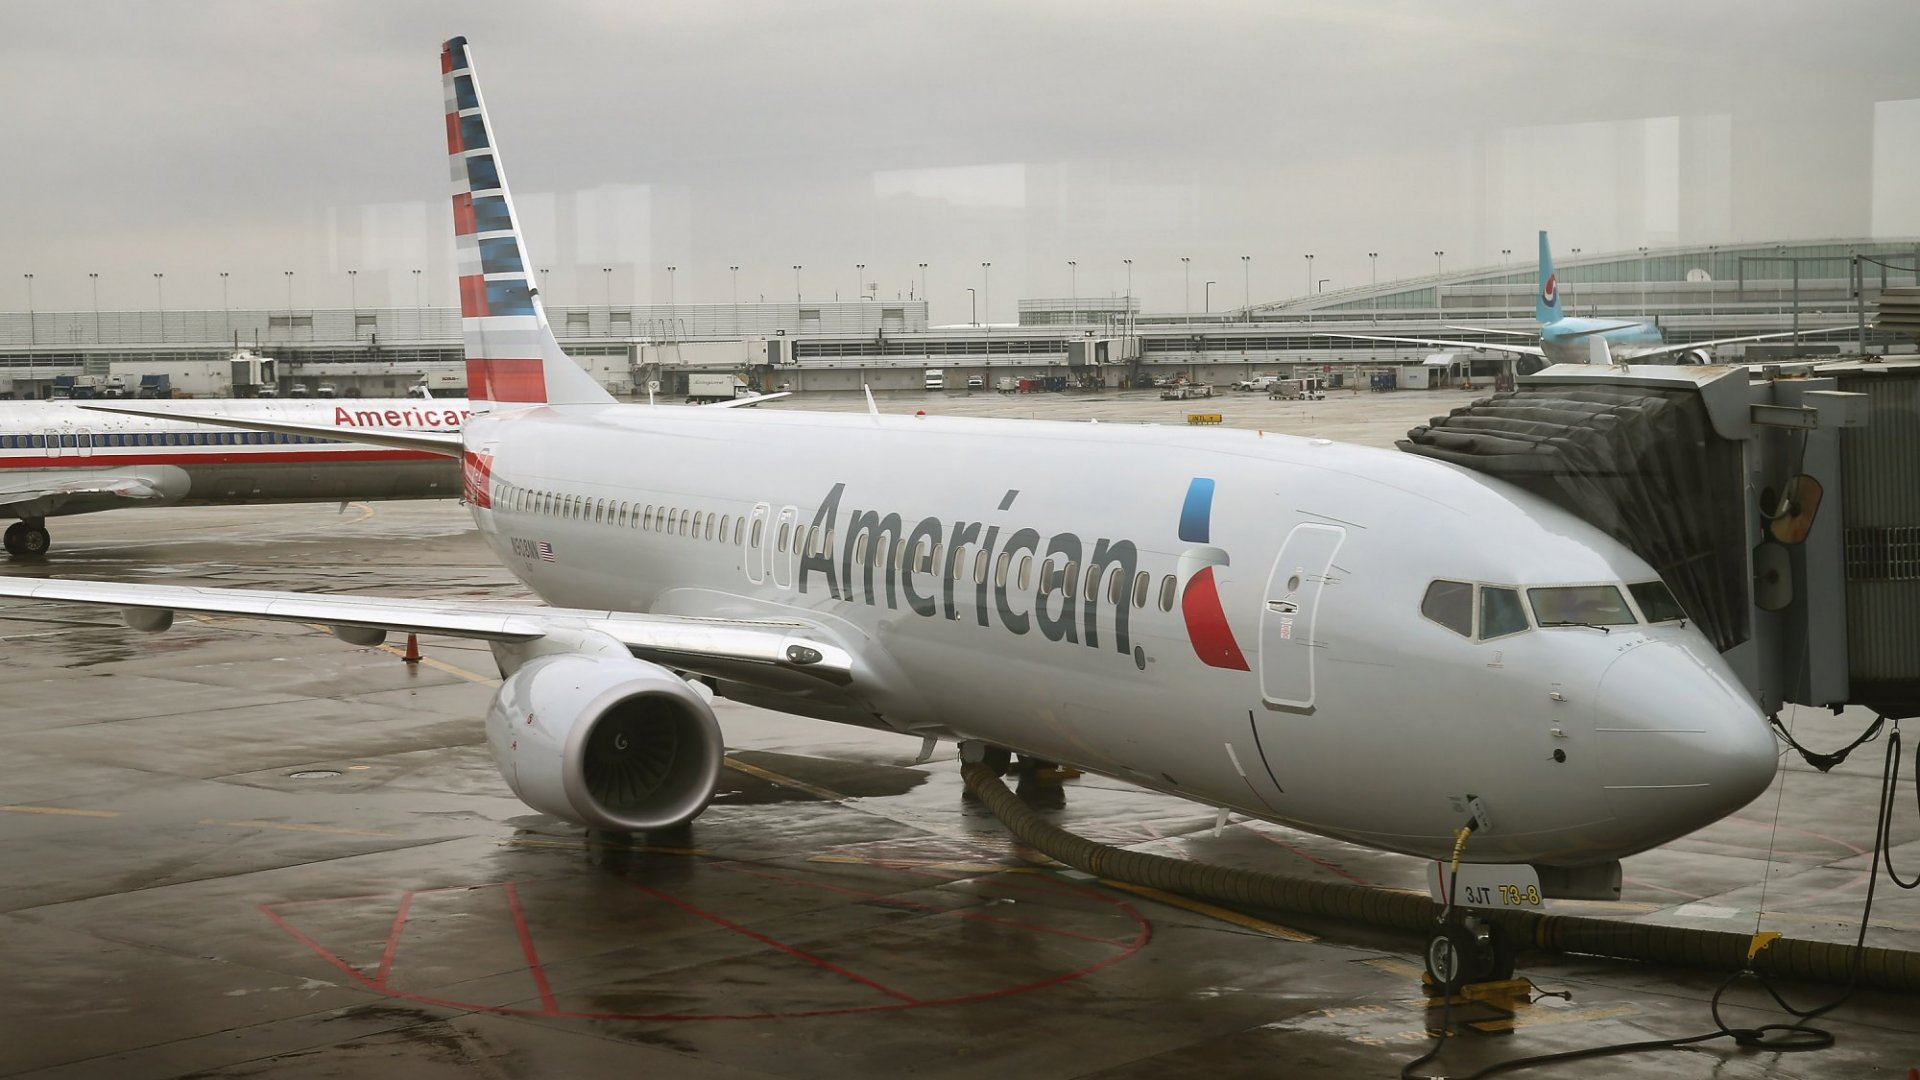 American Airlines Passenger: 'My Checked Bag Smells Awful, Like Something Died In It!' (Little Did She Know)